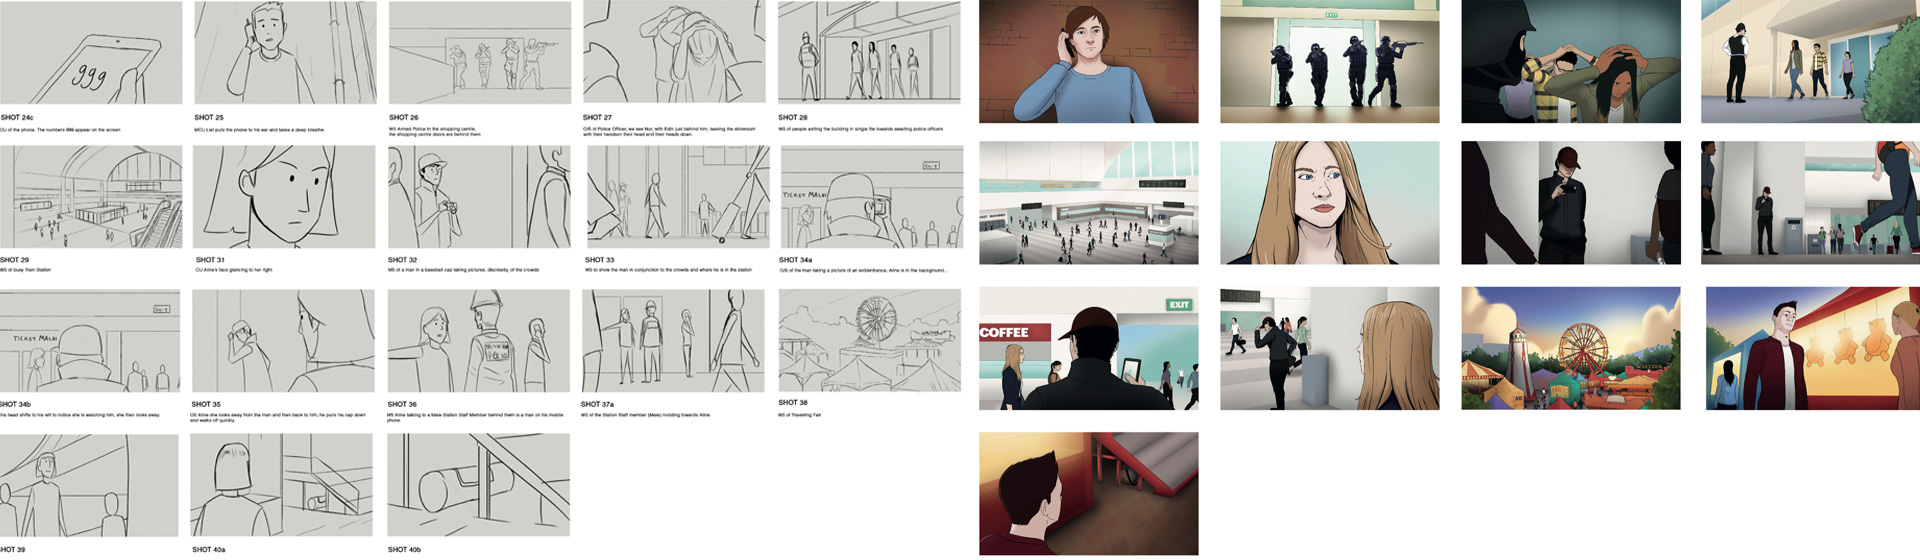 Storyboarding for run hide tell explainer film. Showing hand drawn and full colour storyboard stages.